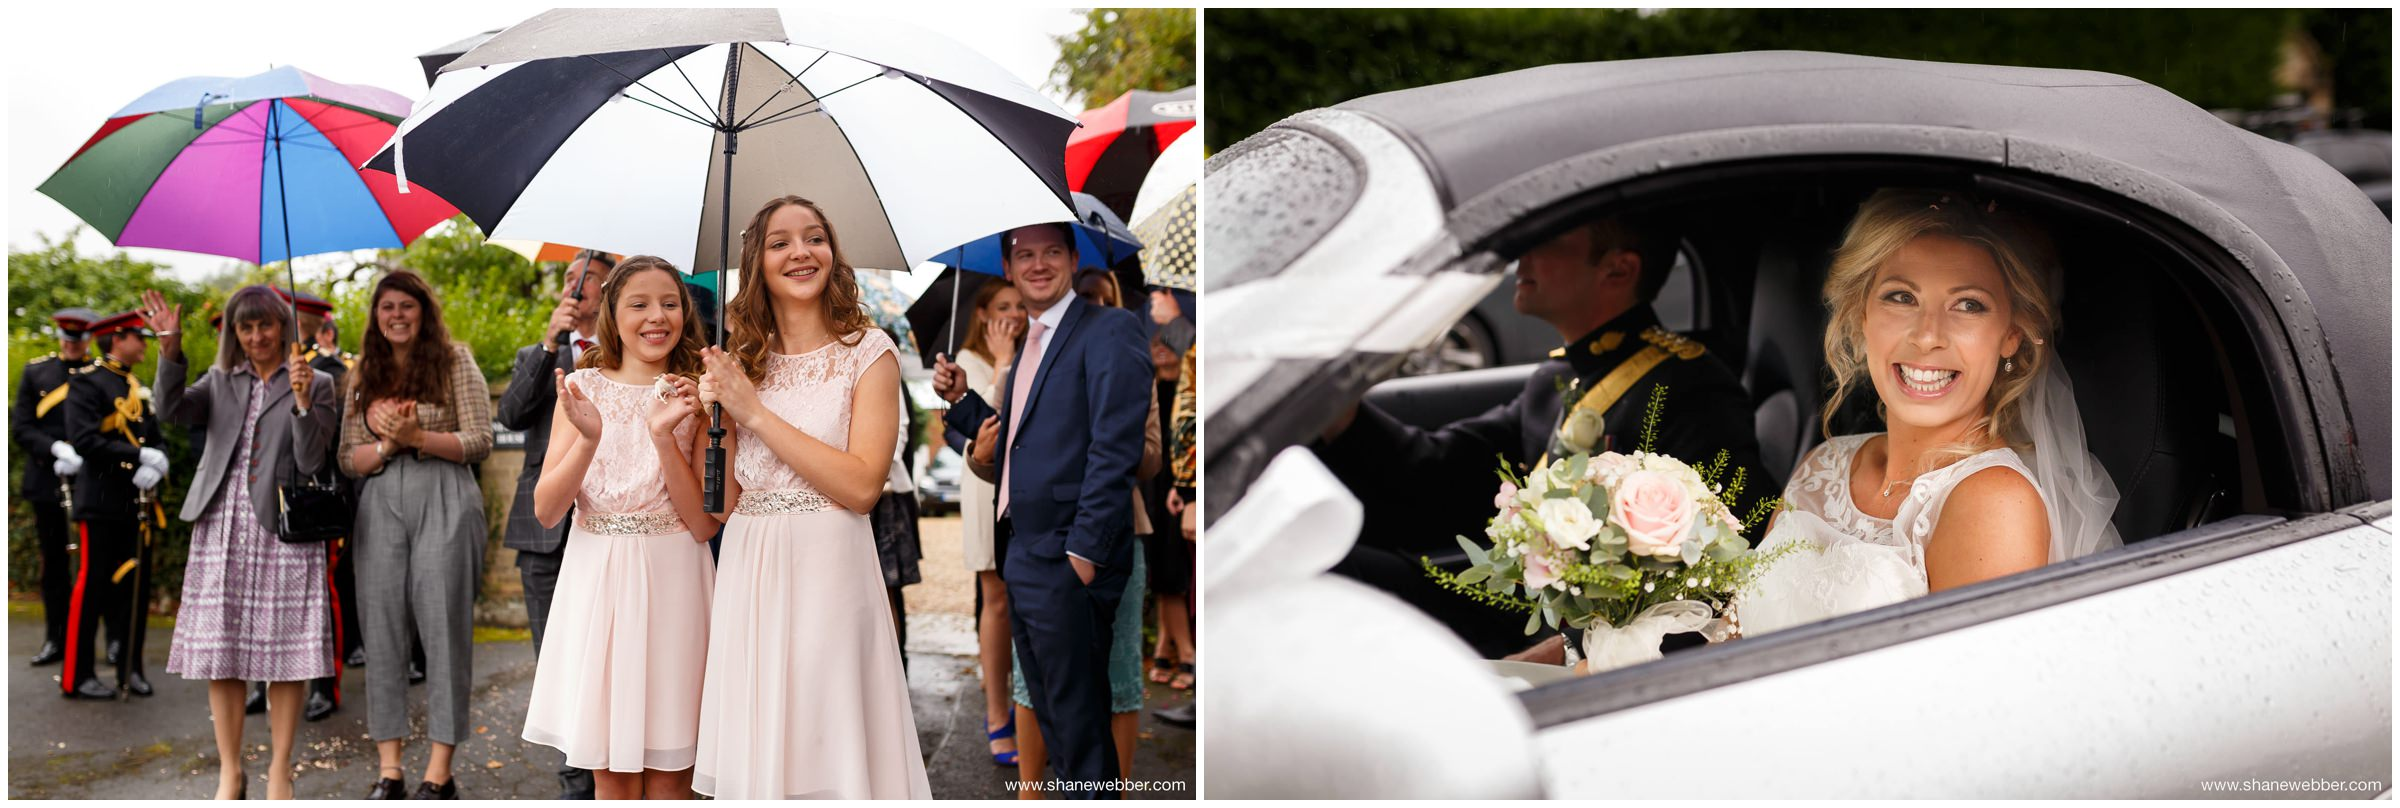 Rainy wedding pictures